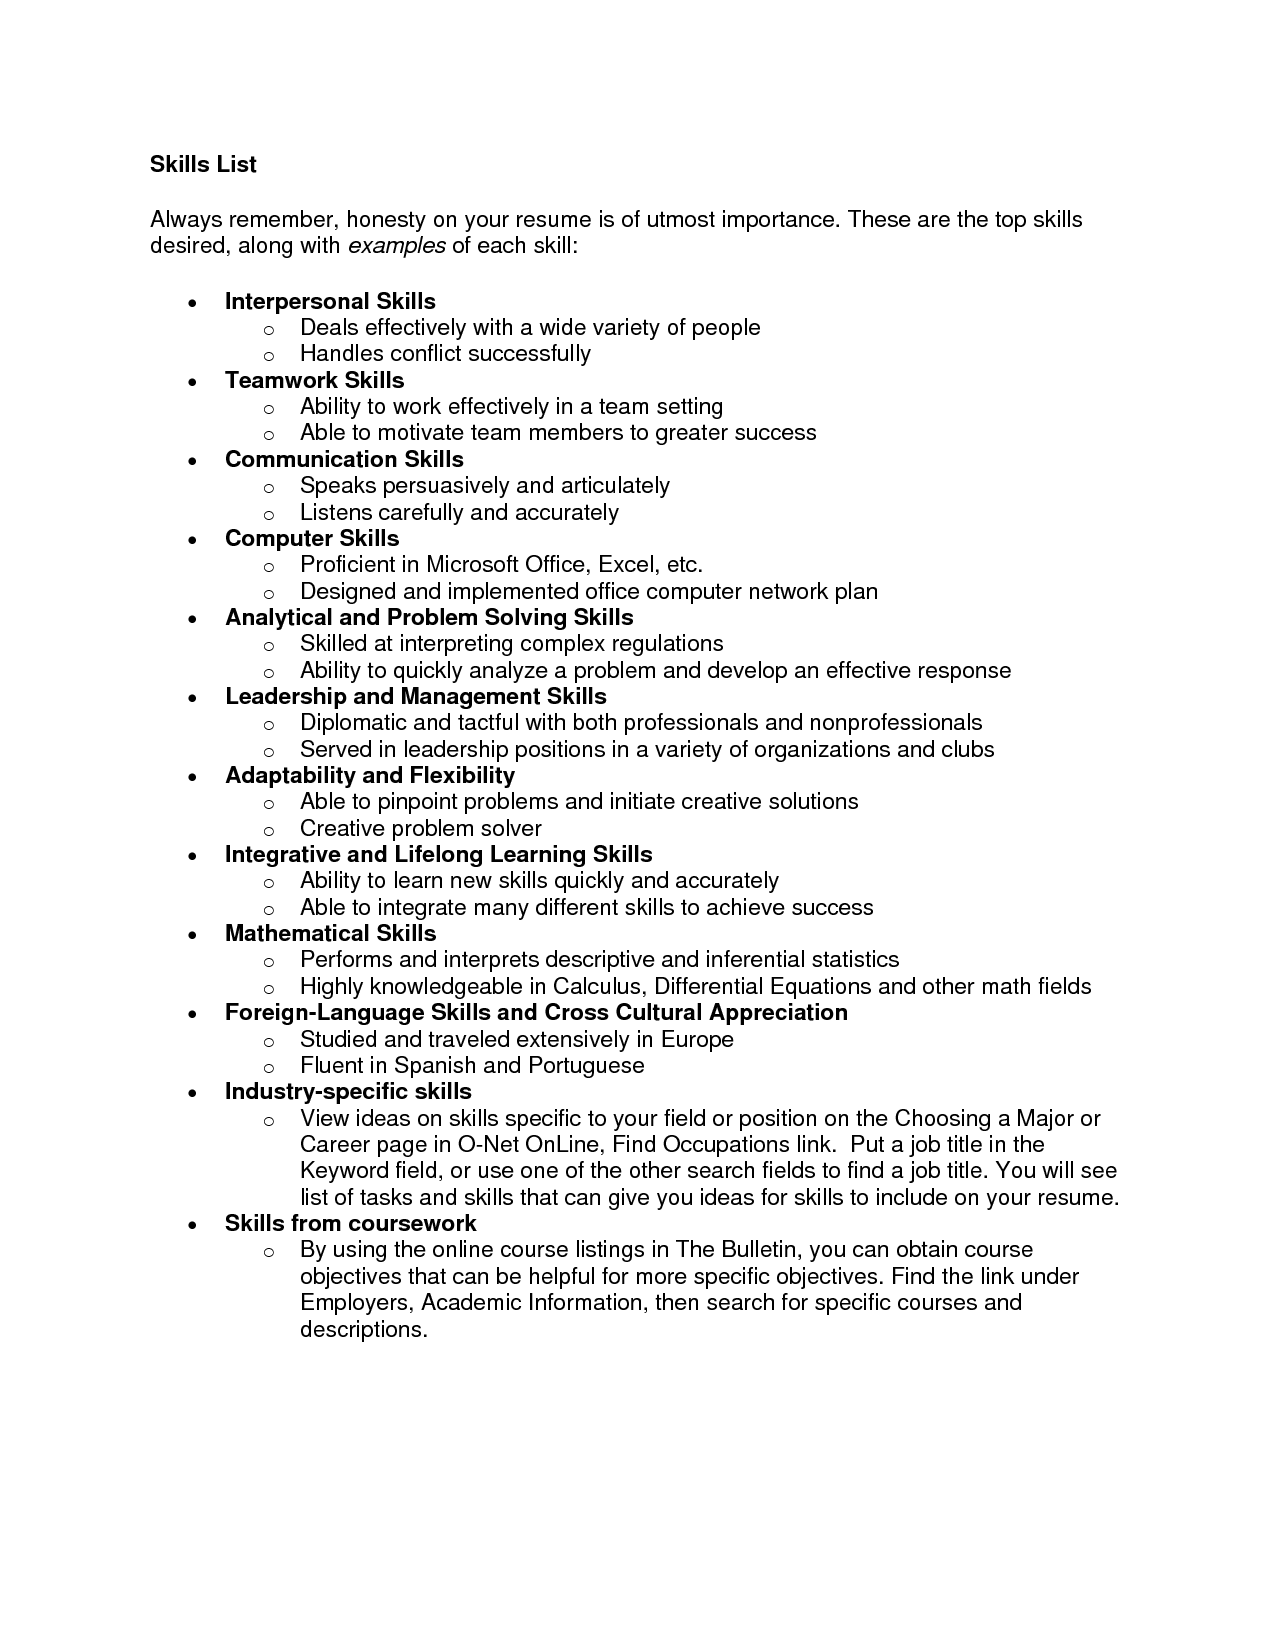 10 list of skills for resume